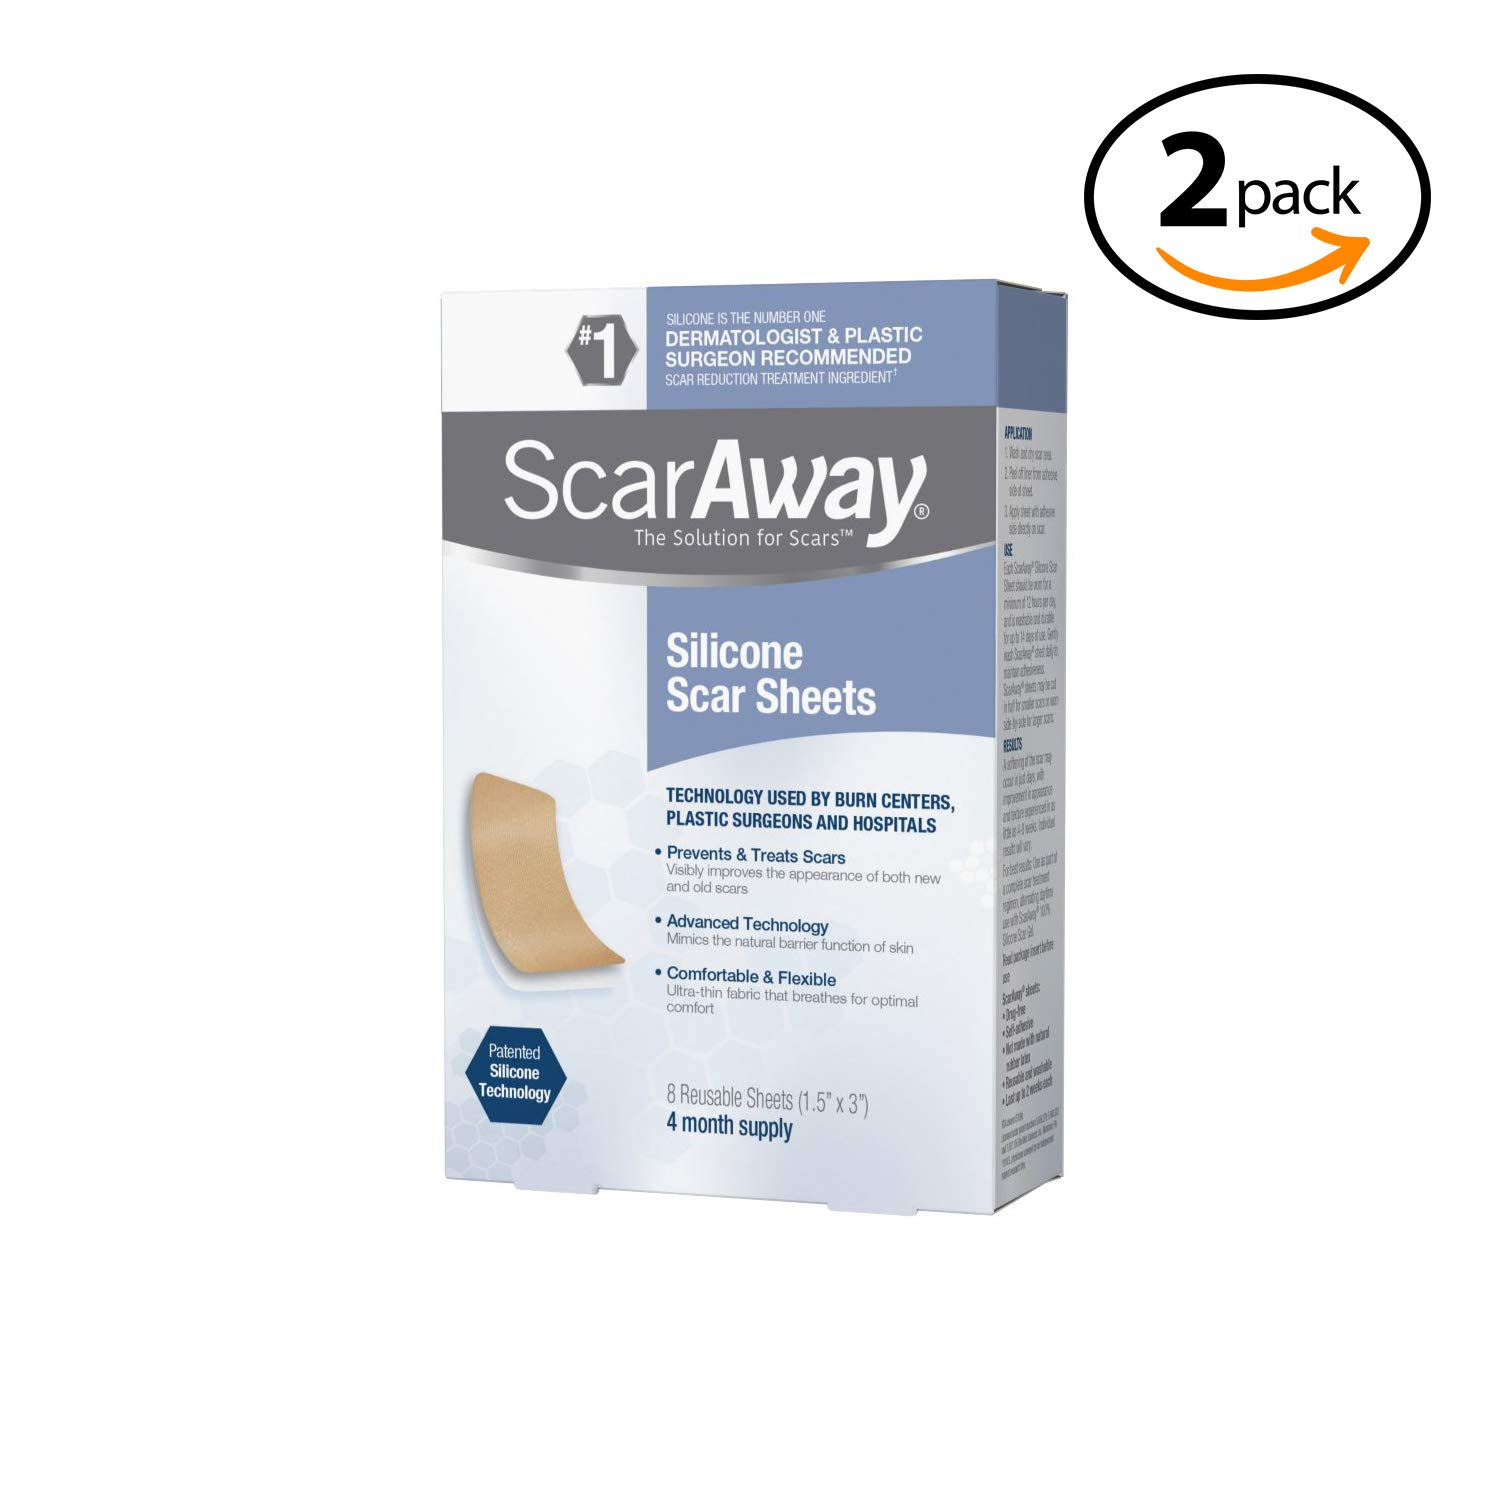 Professional Grade Silicone Scar Treatment Sheets, Prevents & Treats Old and New Scars, 8 Count 2-Pack by ScarAway